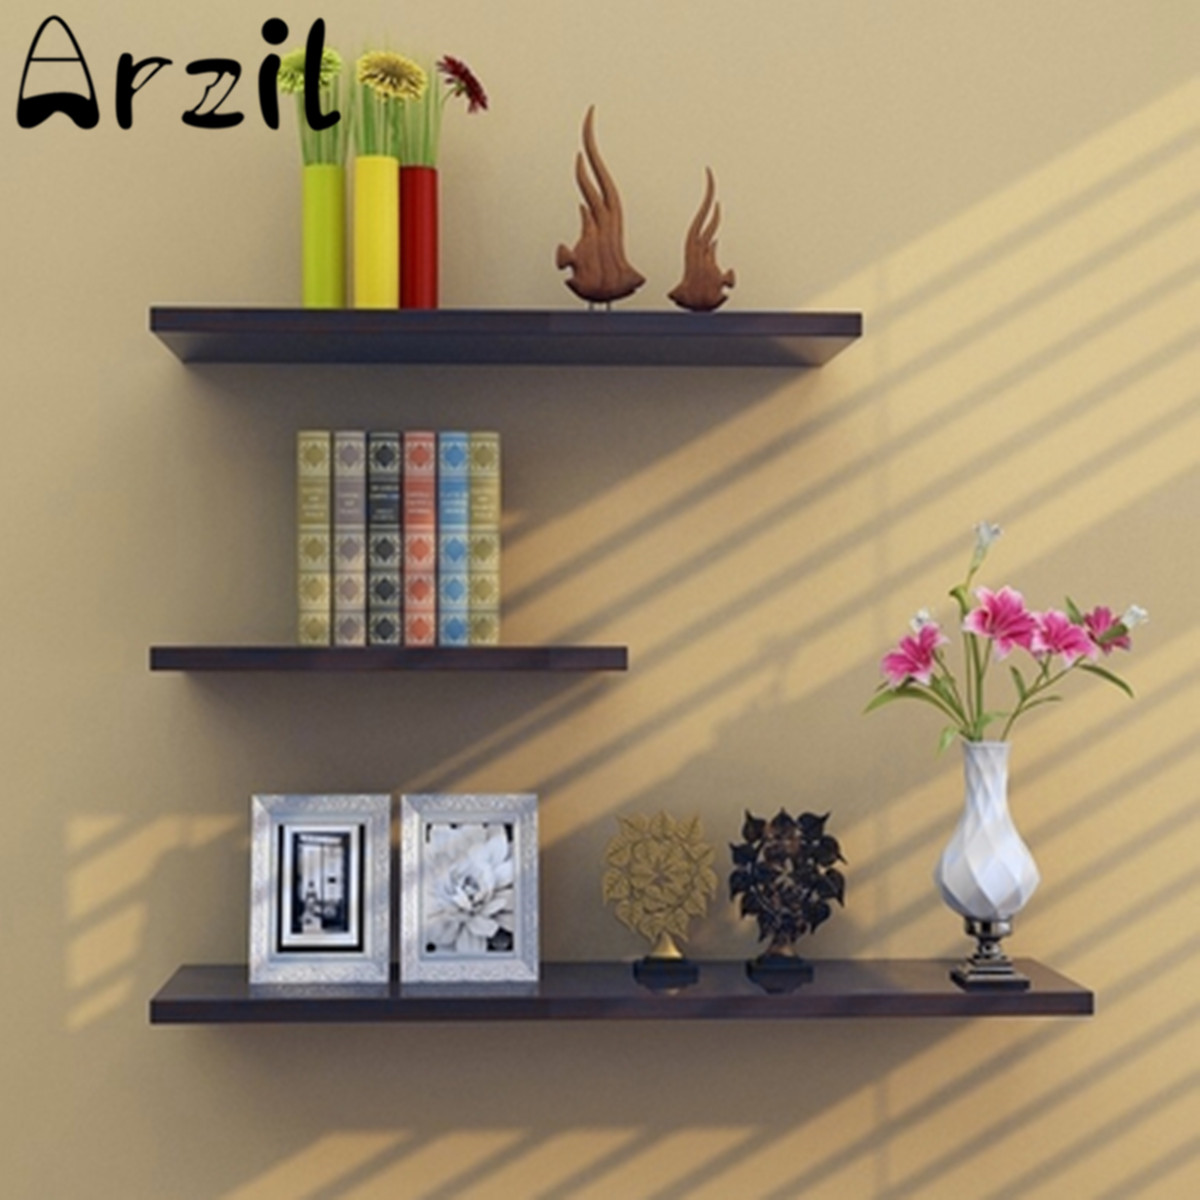 Popular Bedroom Shelves-Buy Cheap Bedroom Shelves lots from China ...